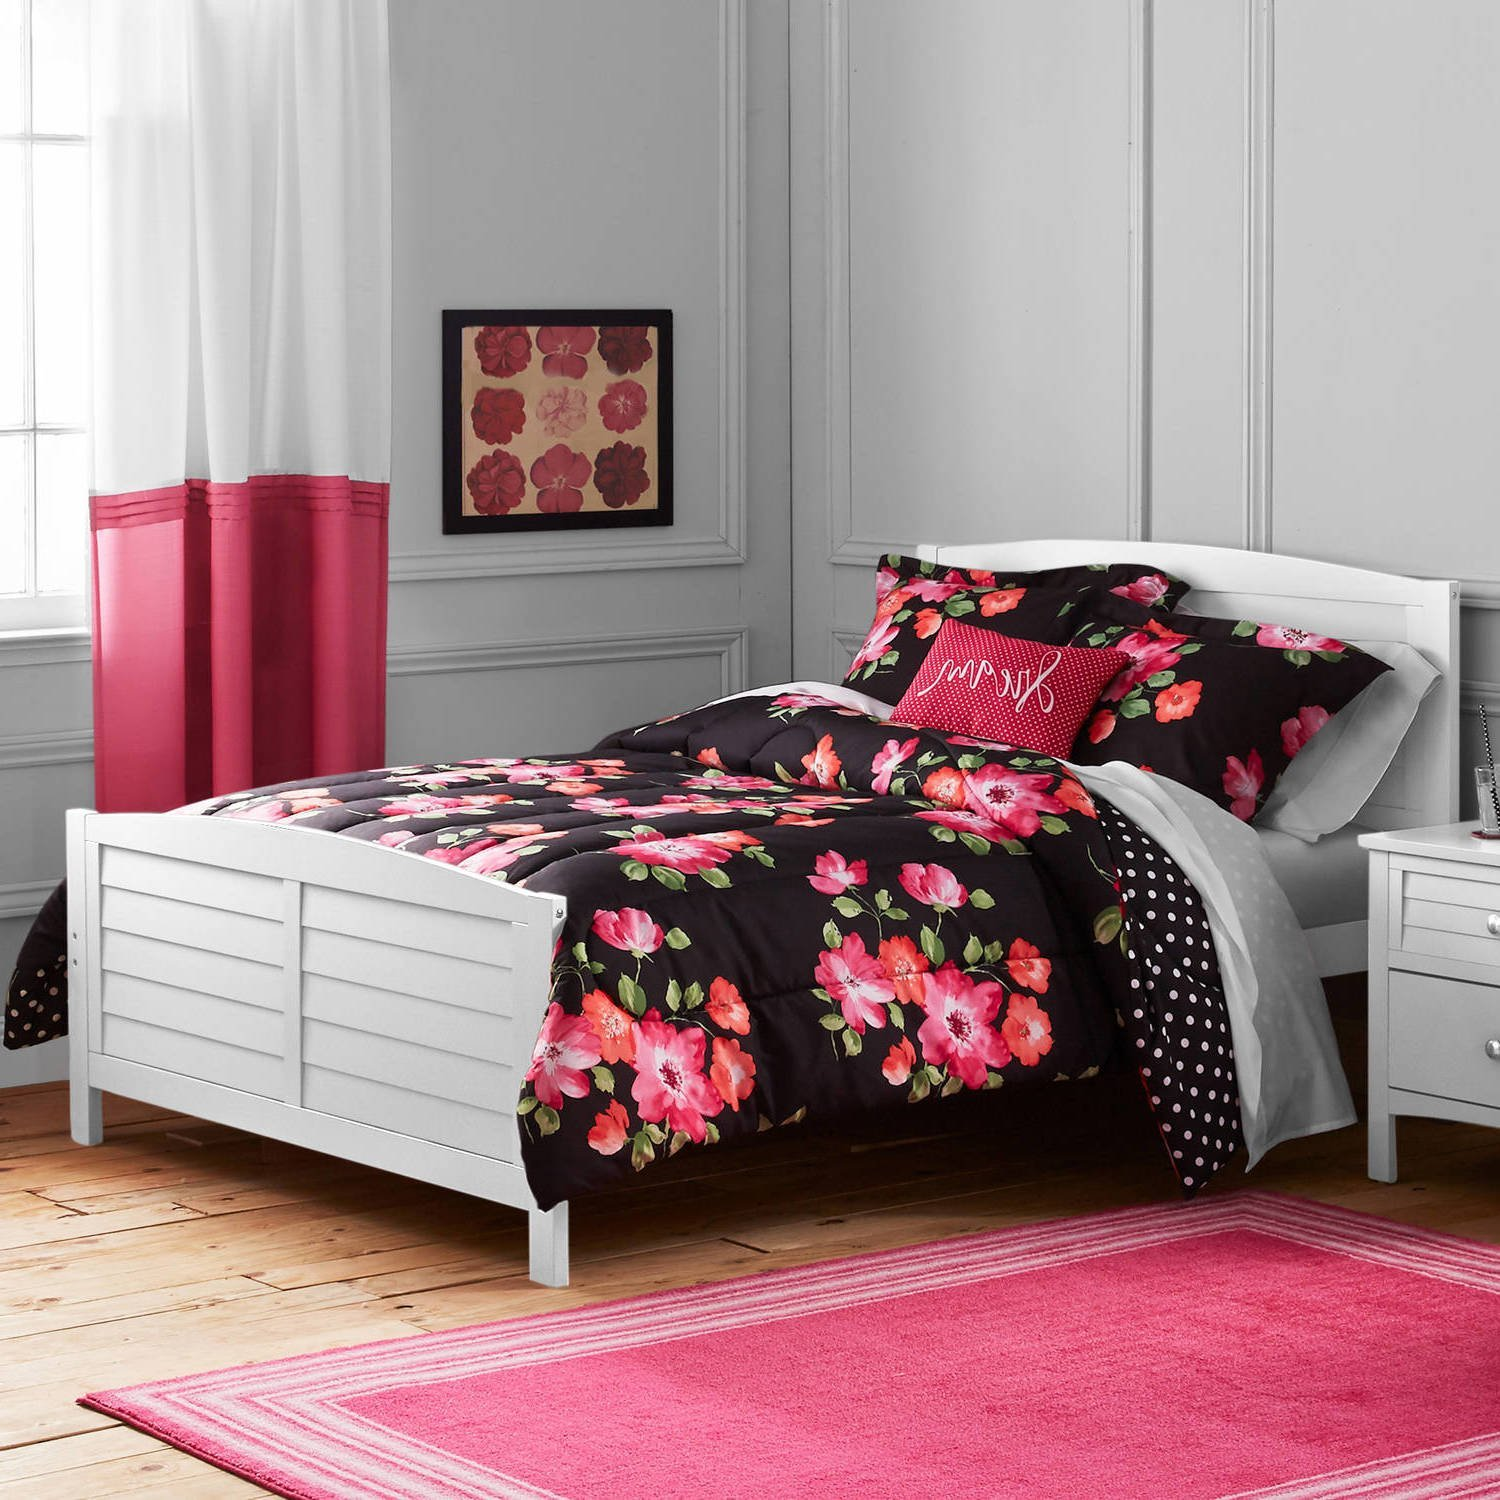 4 Piece Girls Black Dark Pink Watercolor Floral Printed Comforter Set Full Queen, Dark Black Hot Pink Coral Flower Bouquets Teen Themed Kids Bedding For Bedroom Reversible Polka Dot Trendy, Polyester